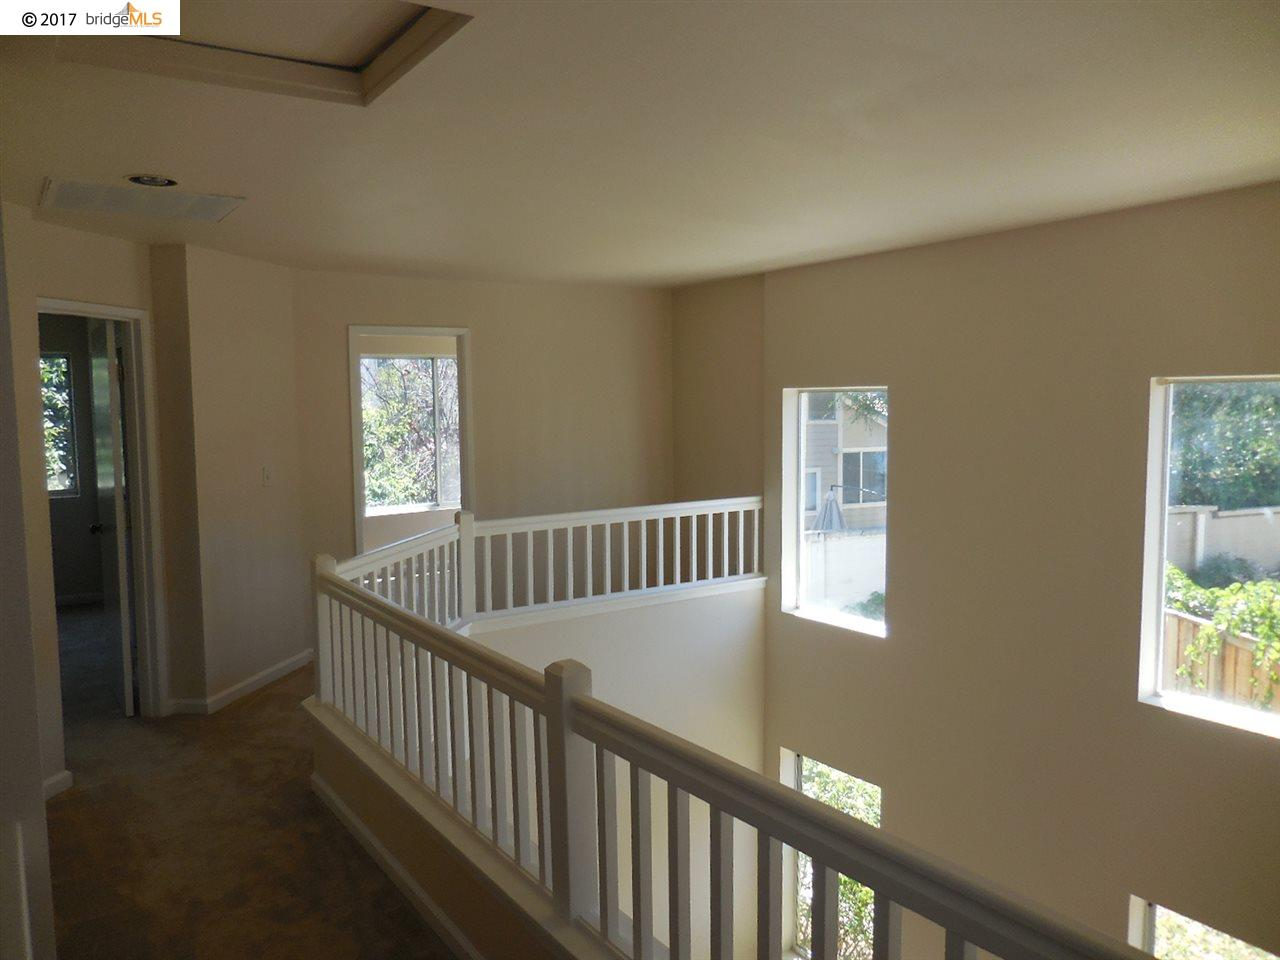 Additional photo for property listing at 1722 Rosemary Court  Antioch, California 94531 Estados Unidos